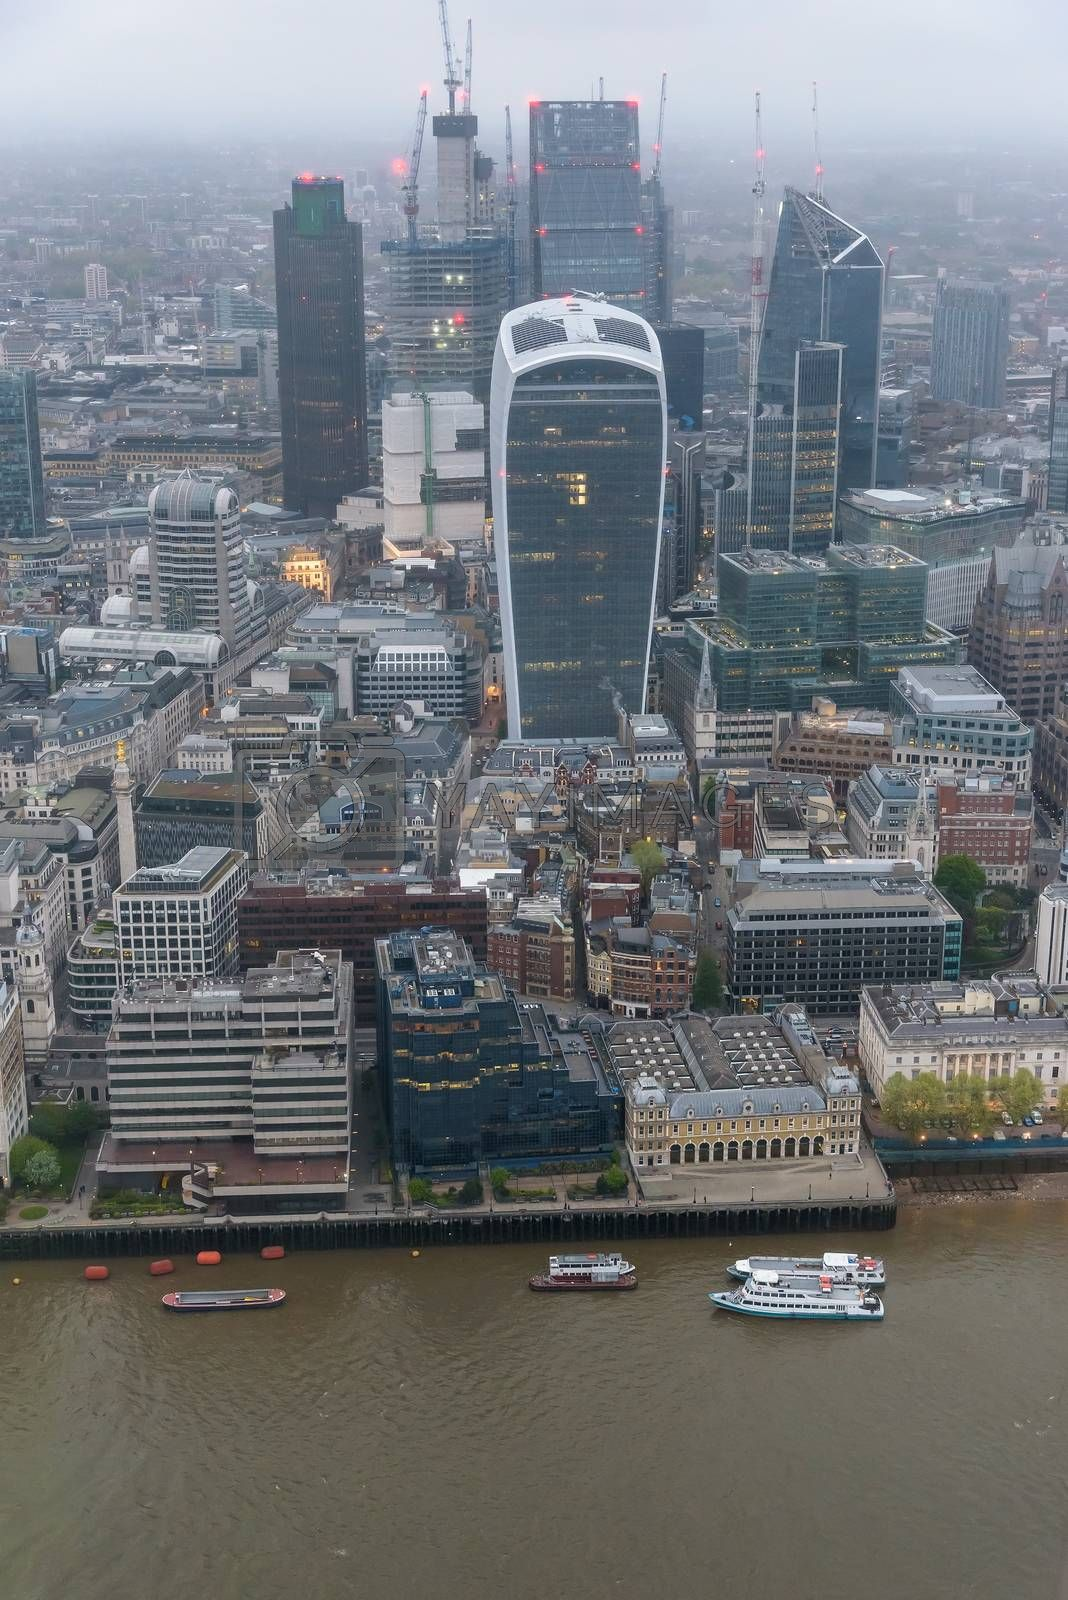 Aerial view of City of London at an overcast day